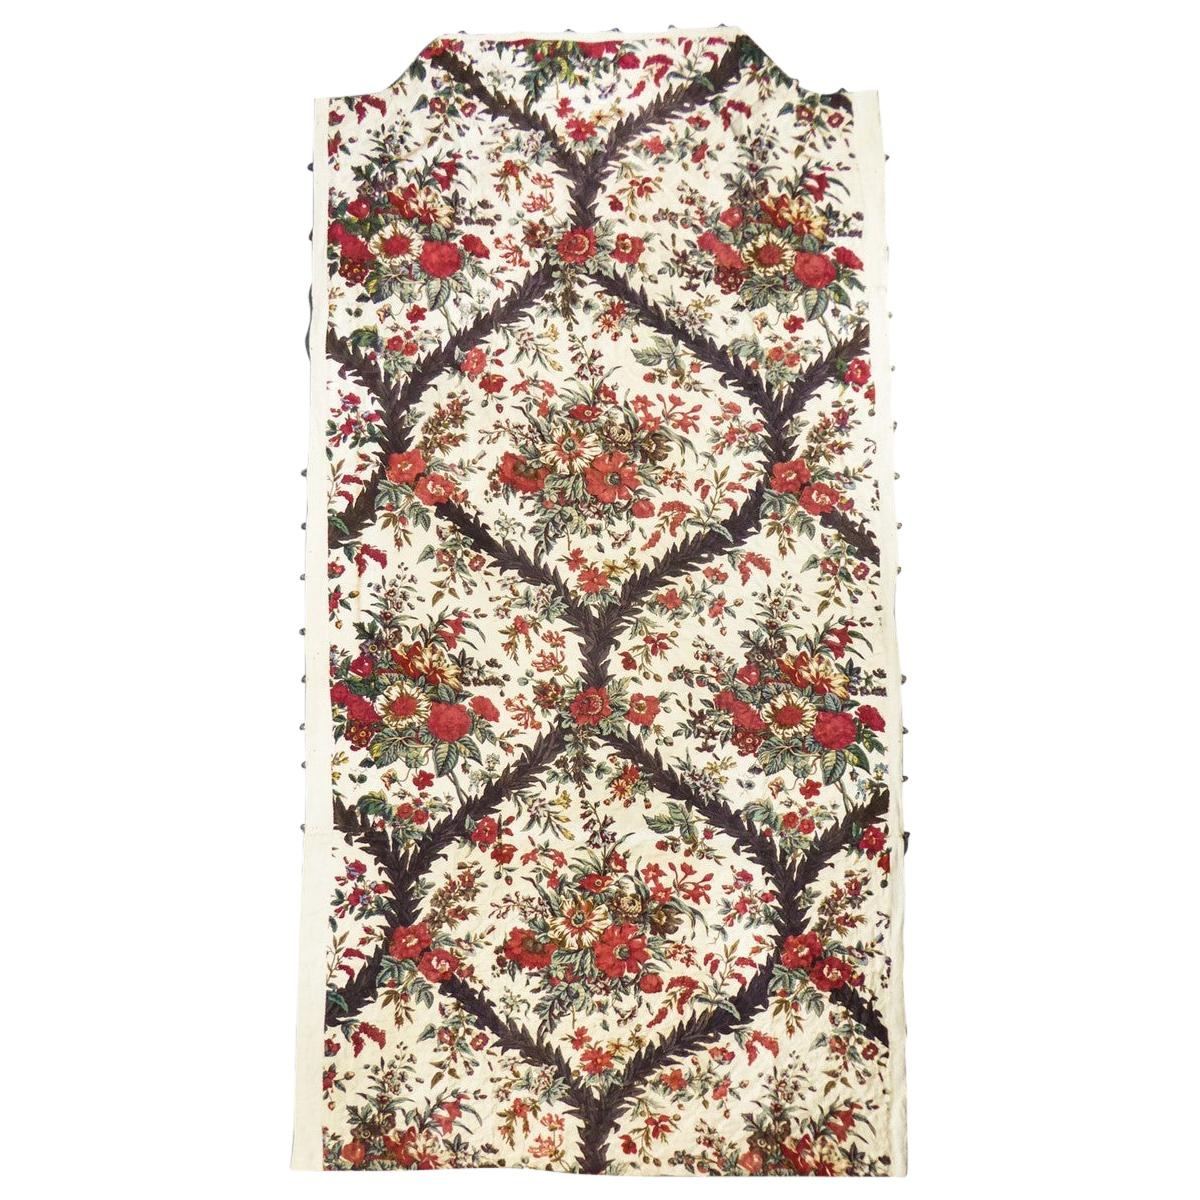 A Chintz block printed quilted Cotton toile -Alsace or Neuchâtel circa 1810